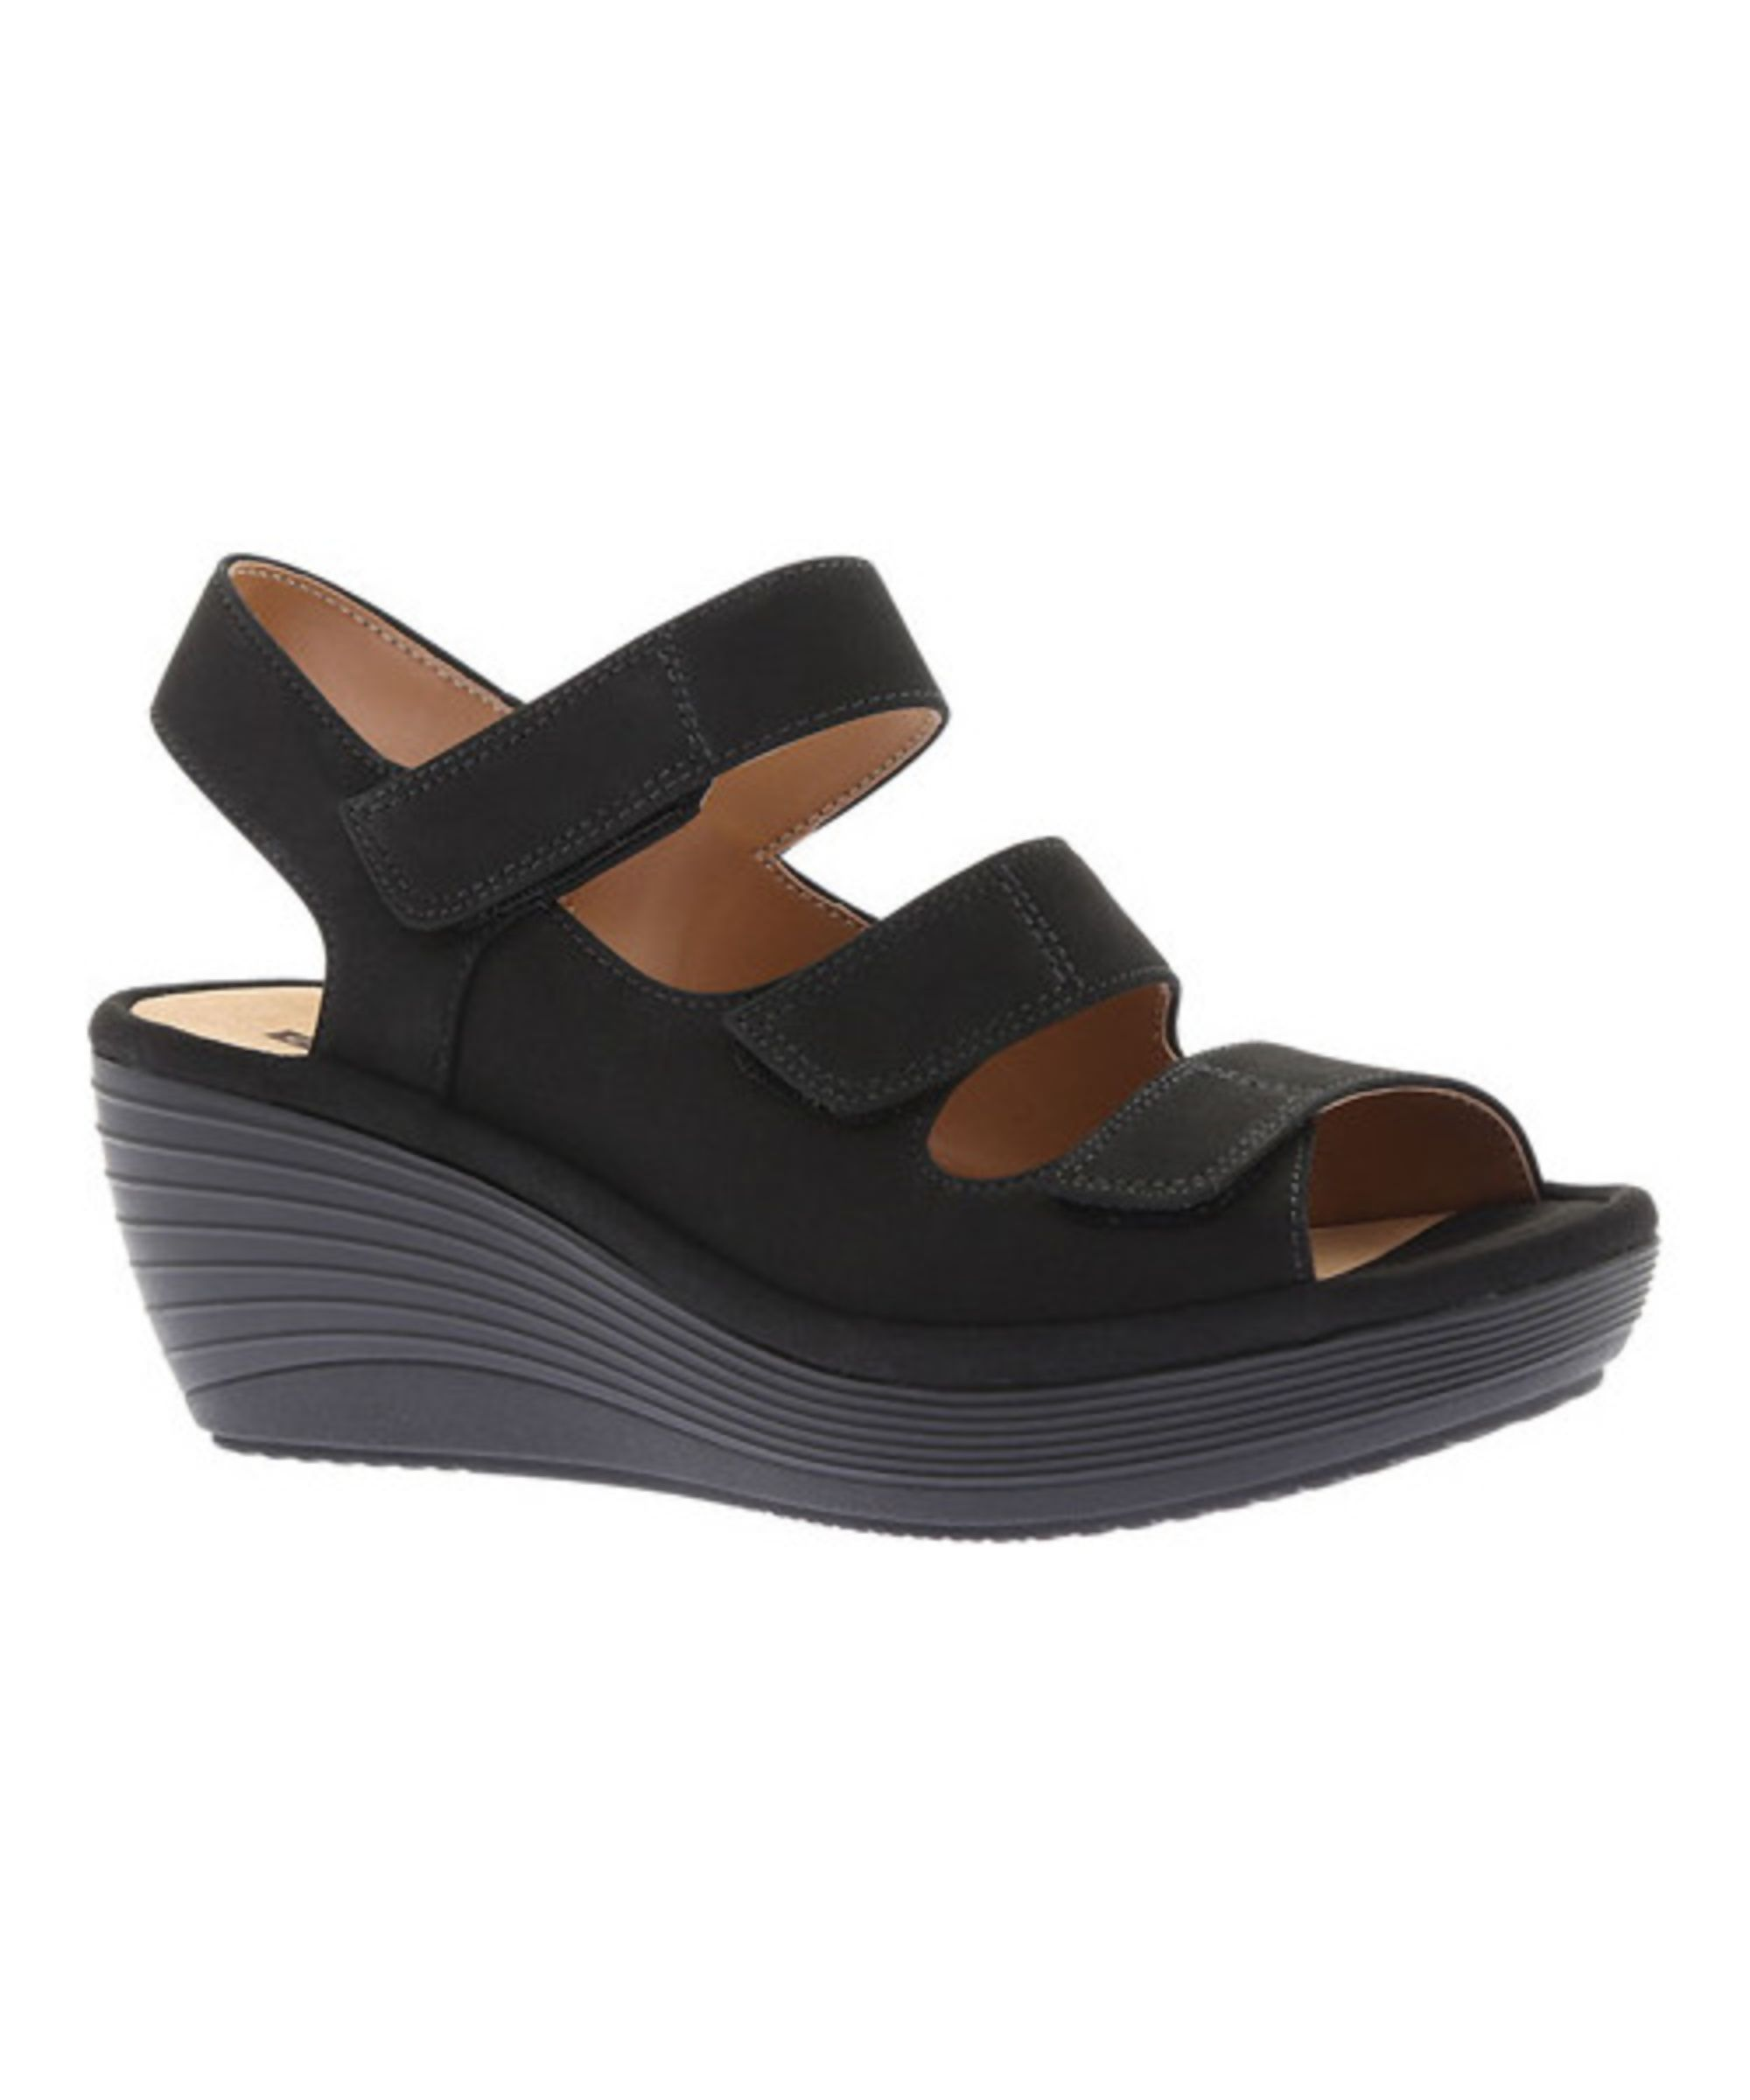 CLARKS | Clarks Women's Reedly Juno Wedge Sandal #Shoes #Sandals #CLARKS